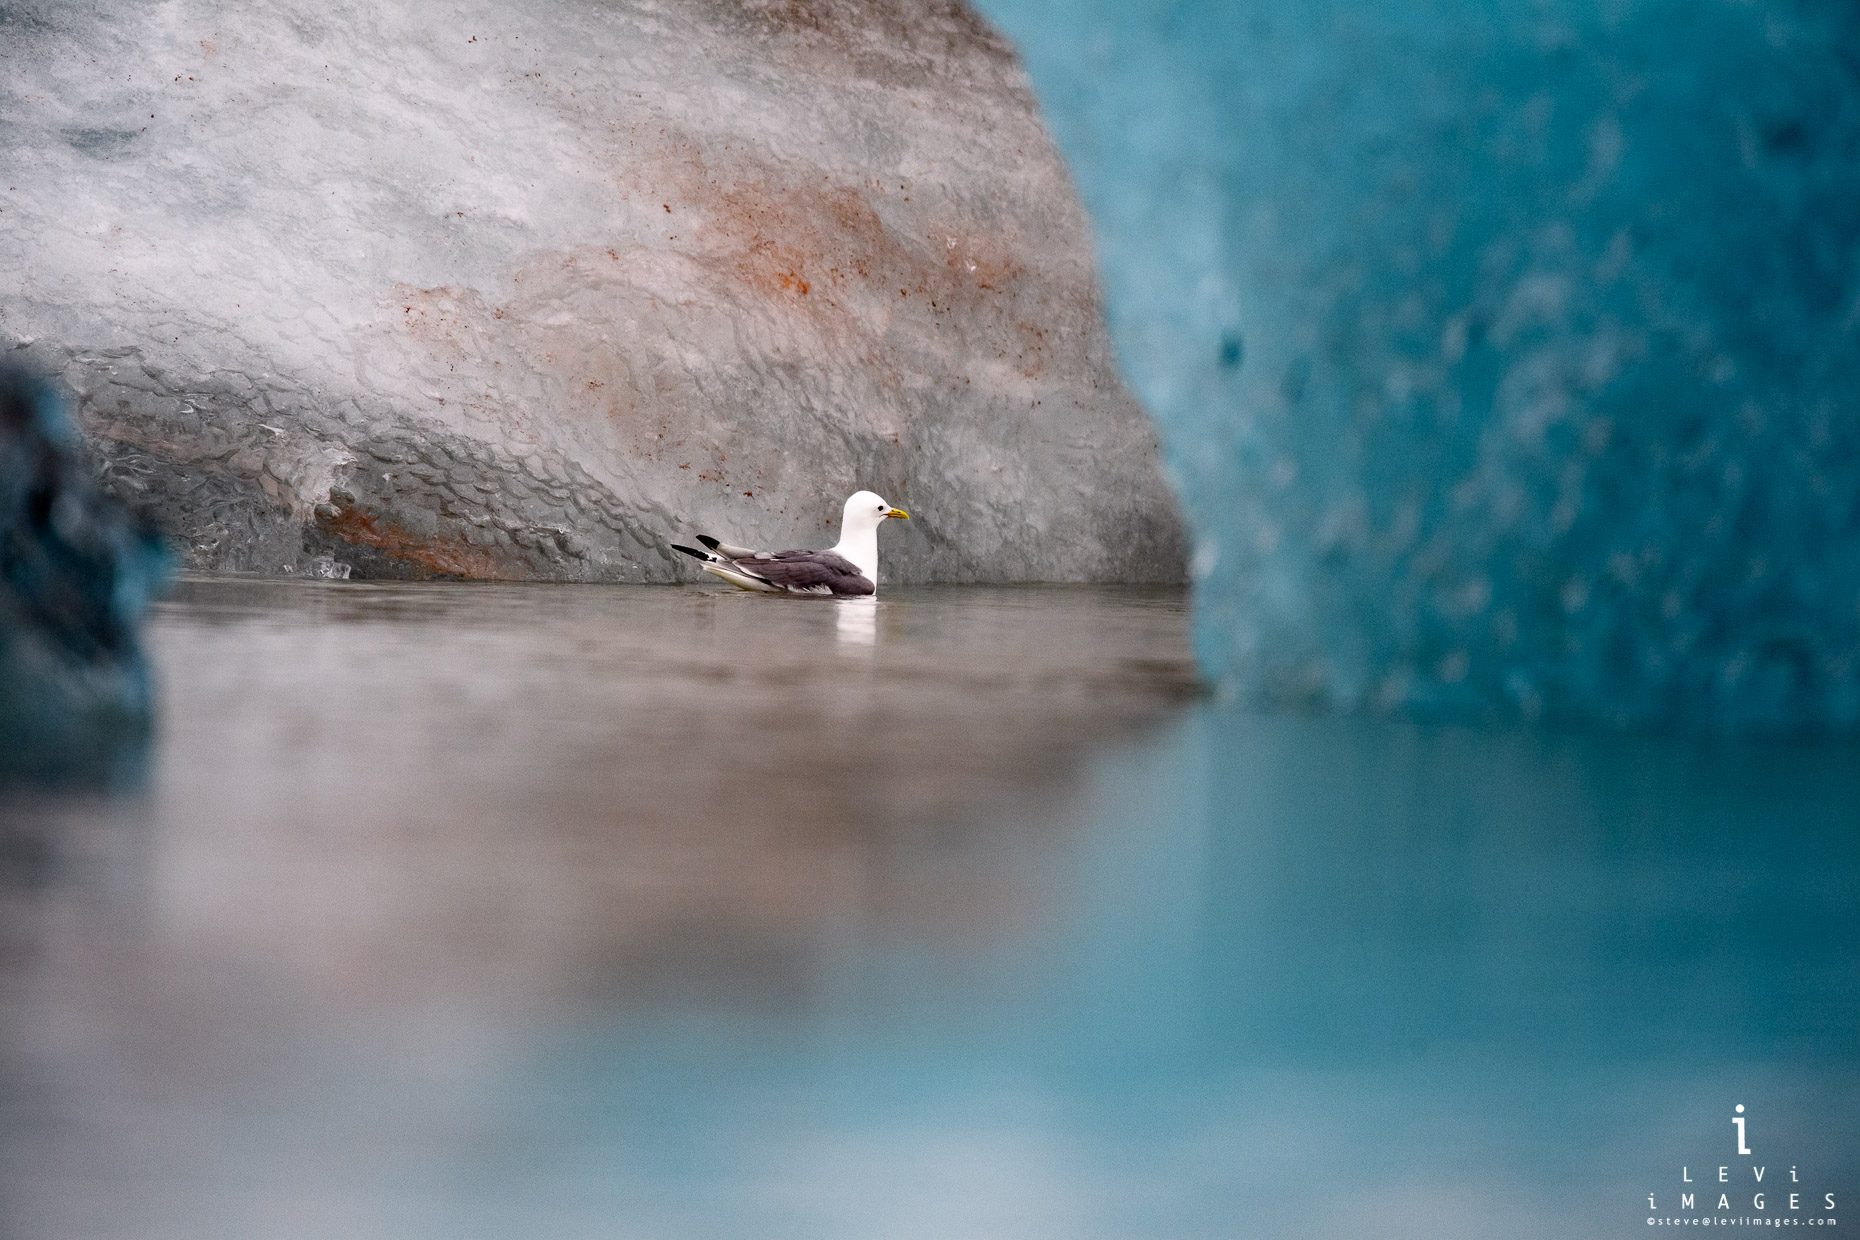 Kittiwake (genus Rissa) swims inside lichen-covered remains of iceberg. Svalbard, Norway